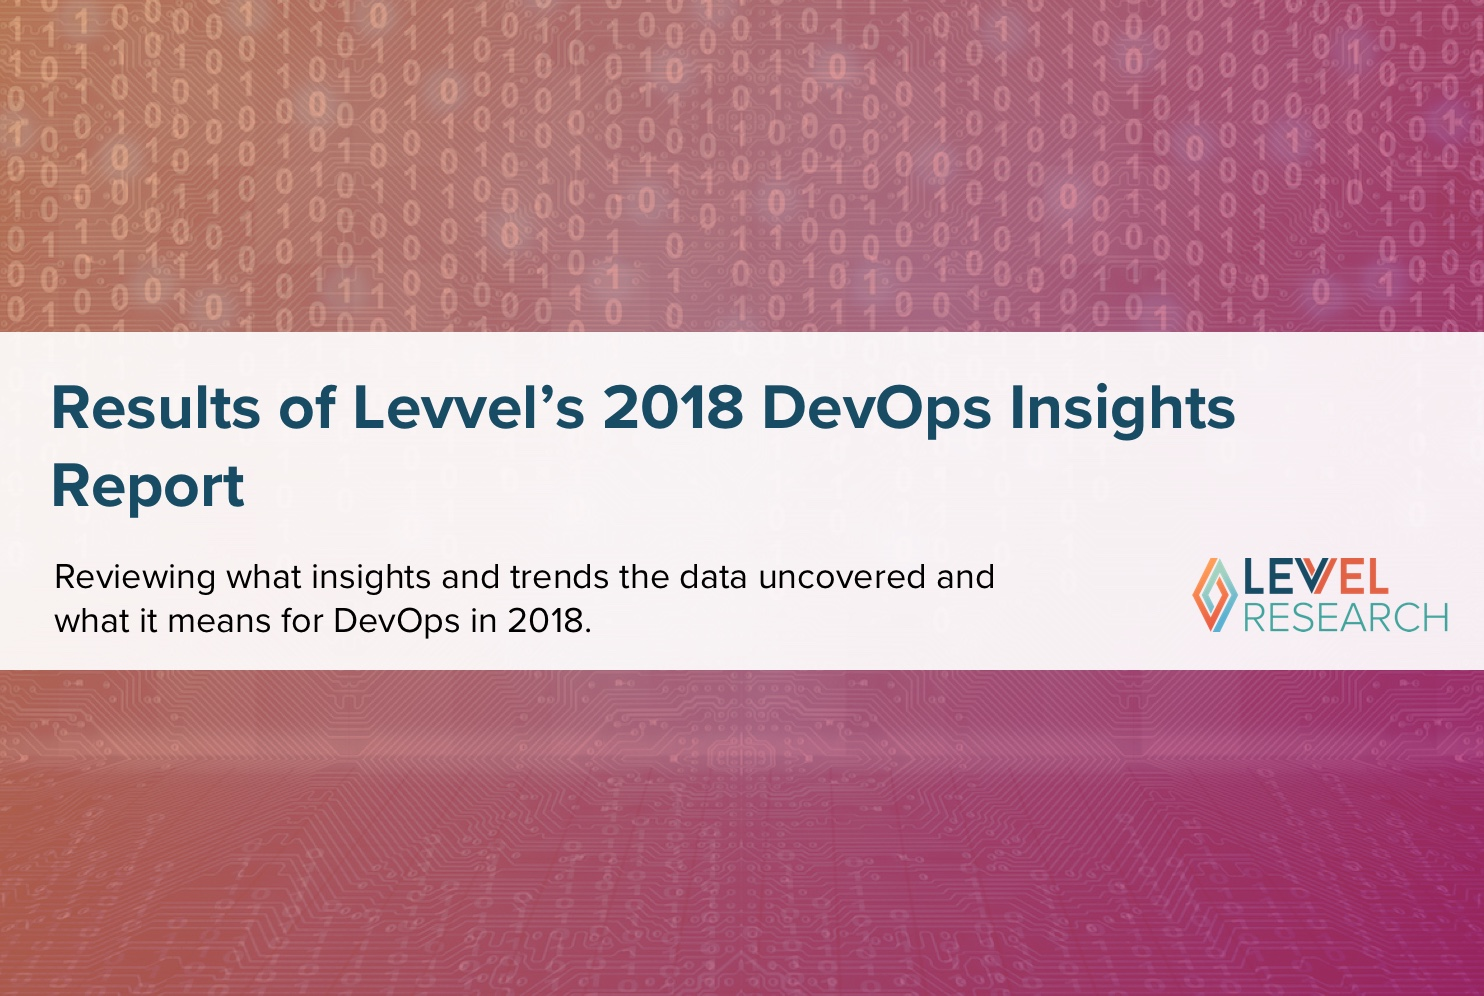 Results of Levvel's 2018 DevOps Insight Report